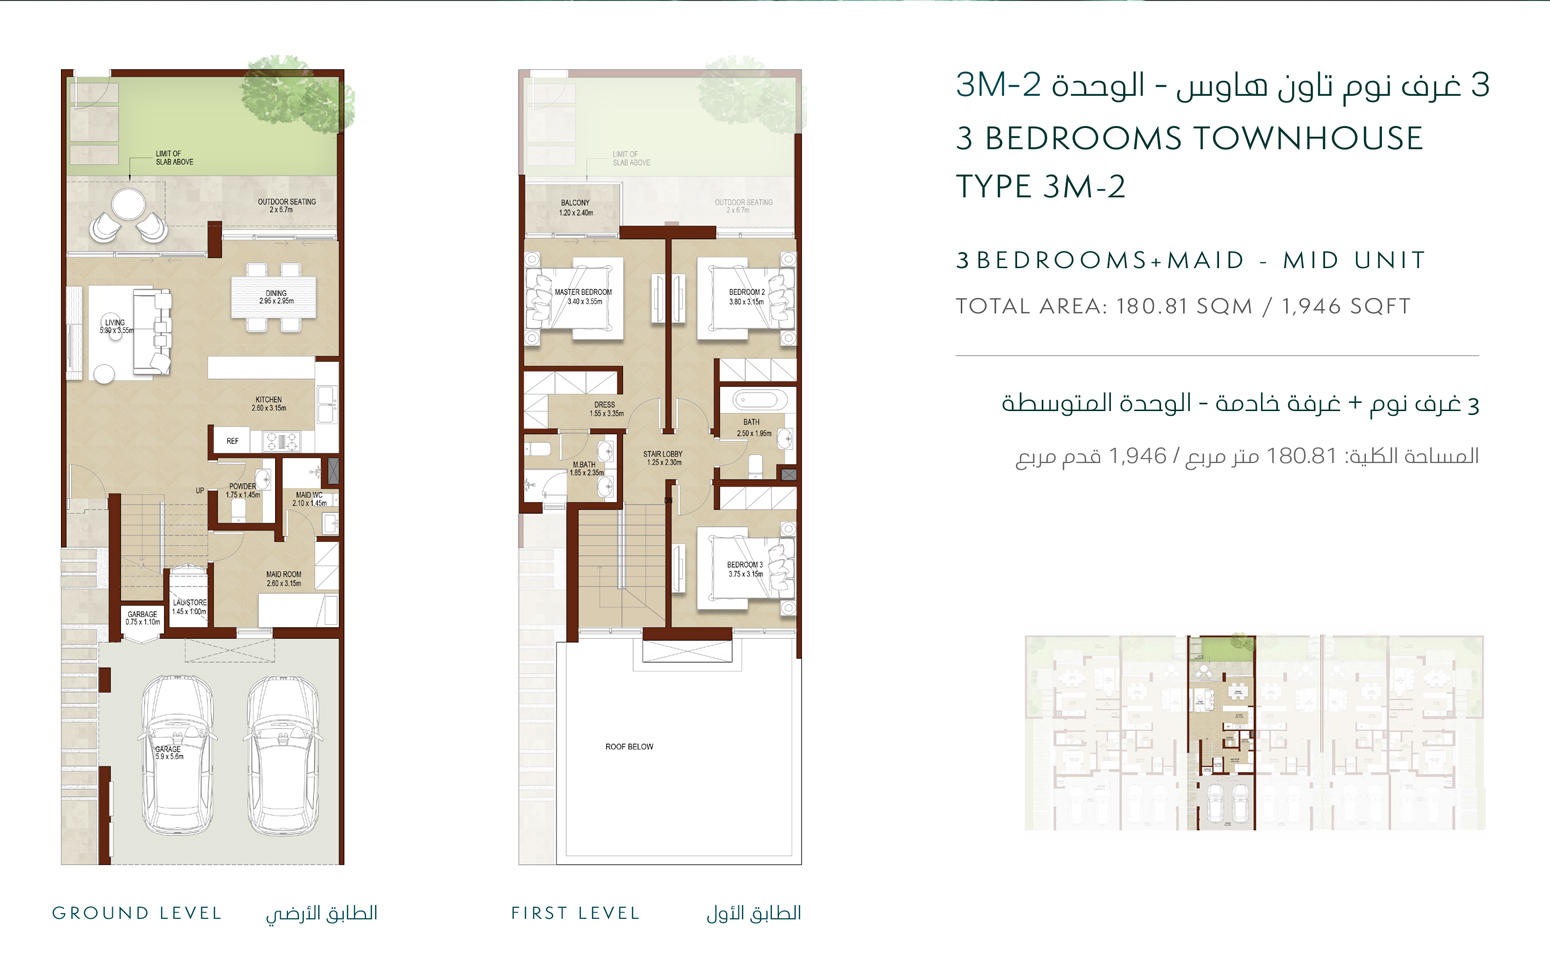 3-Bed+Maid, Type: 3M-2, Size: 1,946 Sq Ft